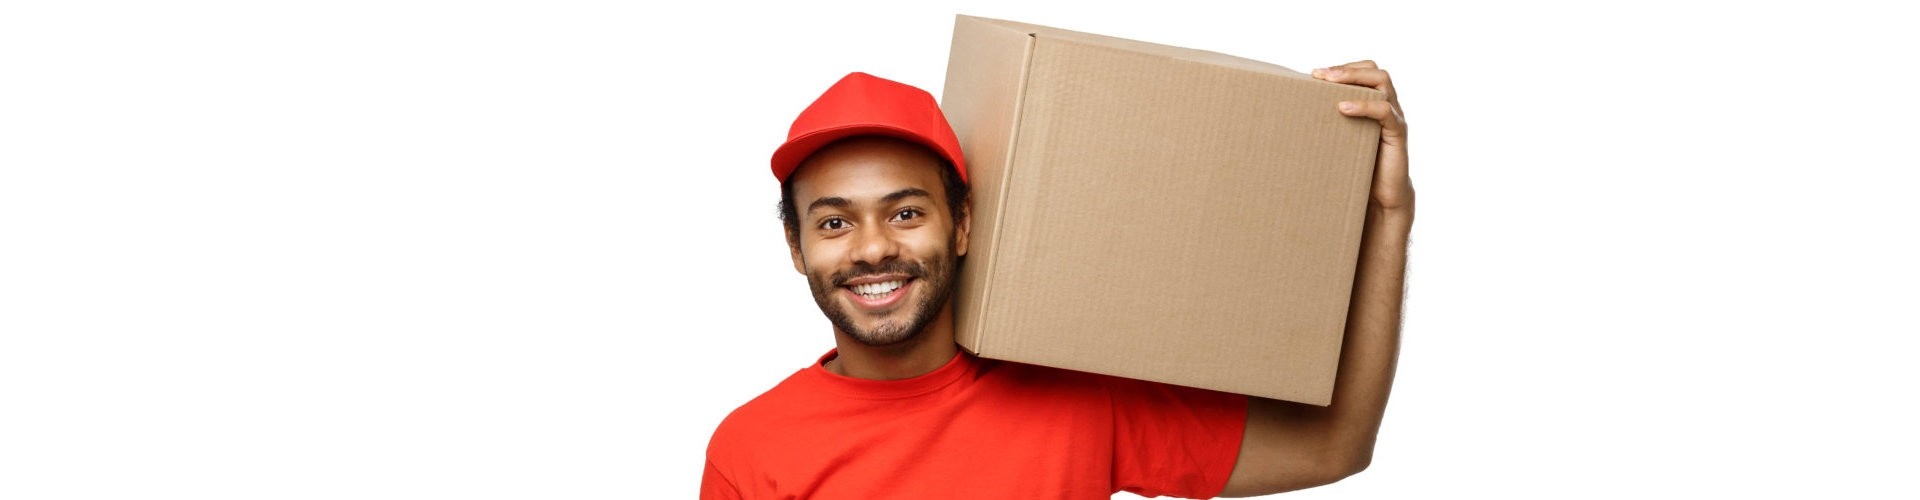 delivery guy holding a box